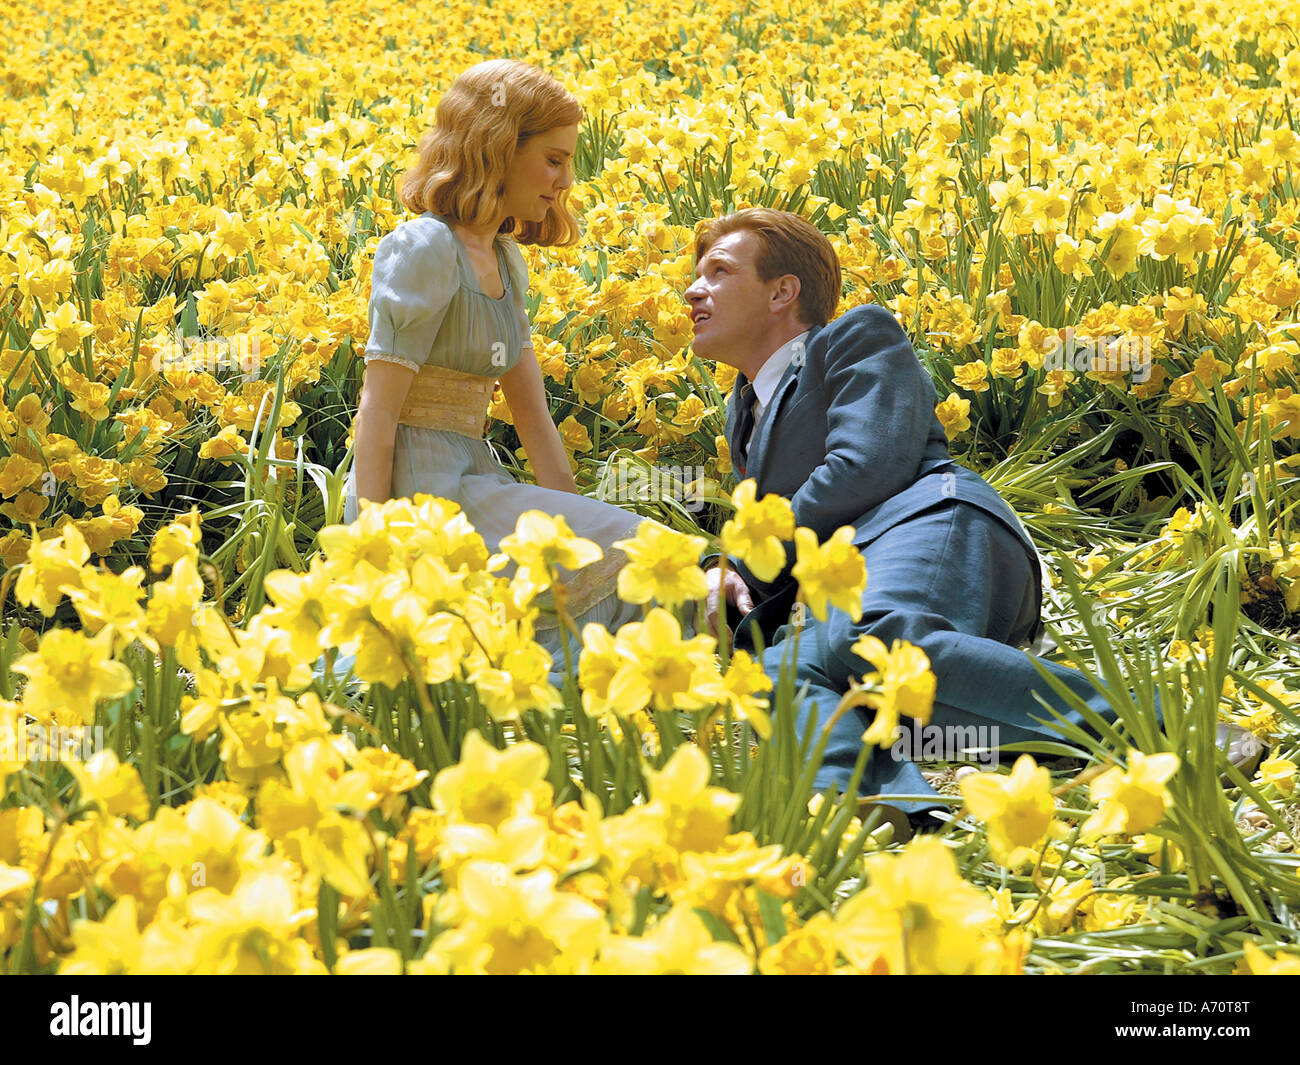 BIG FISH 2003 Columbia film with Ewan McGregor and Alison Lohman - Stock Image